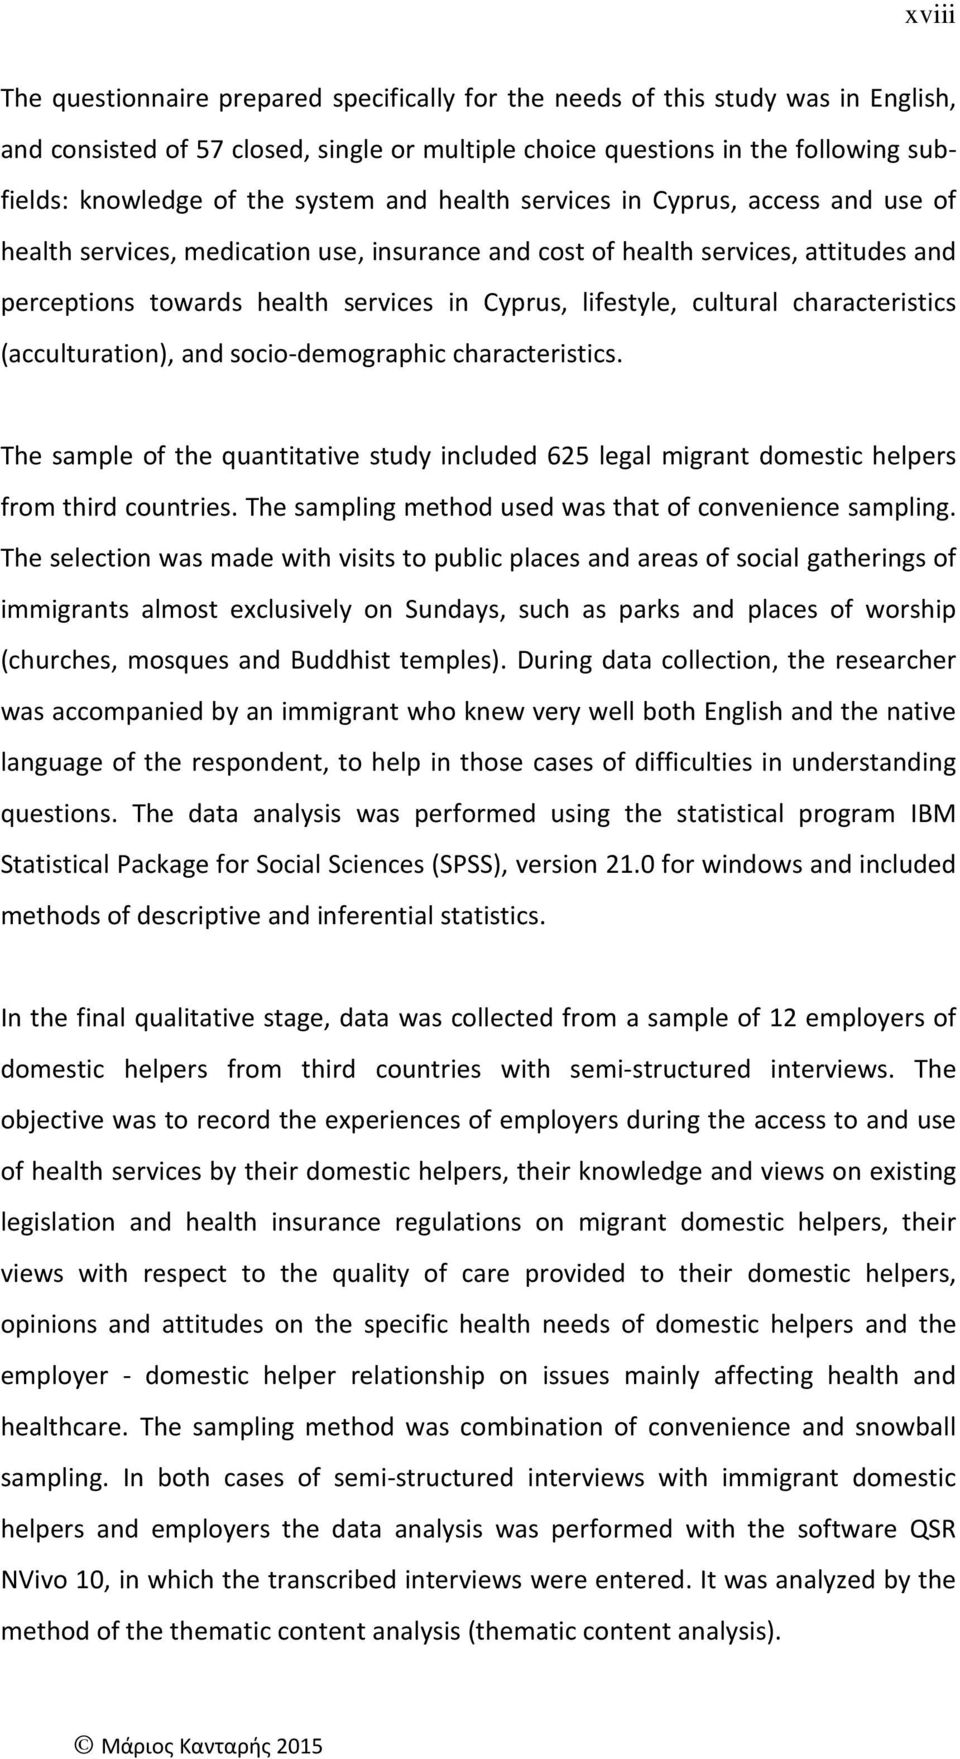 cultural characteristics (acculturation), and socio-demographic characteristics. The sample of the quantitative study included 625 legal migrant domestic helpers from third countries.